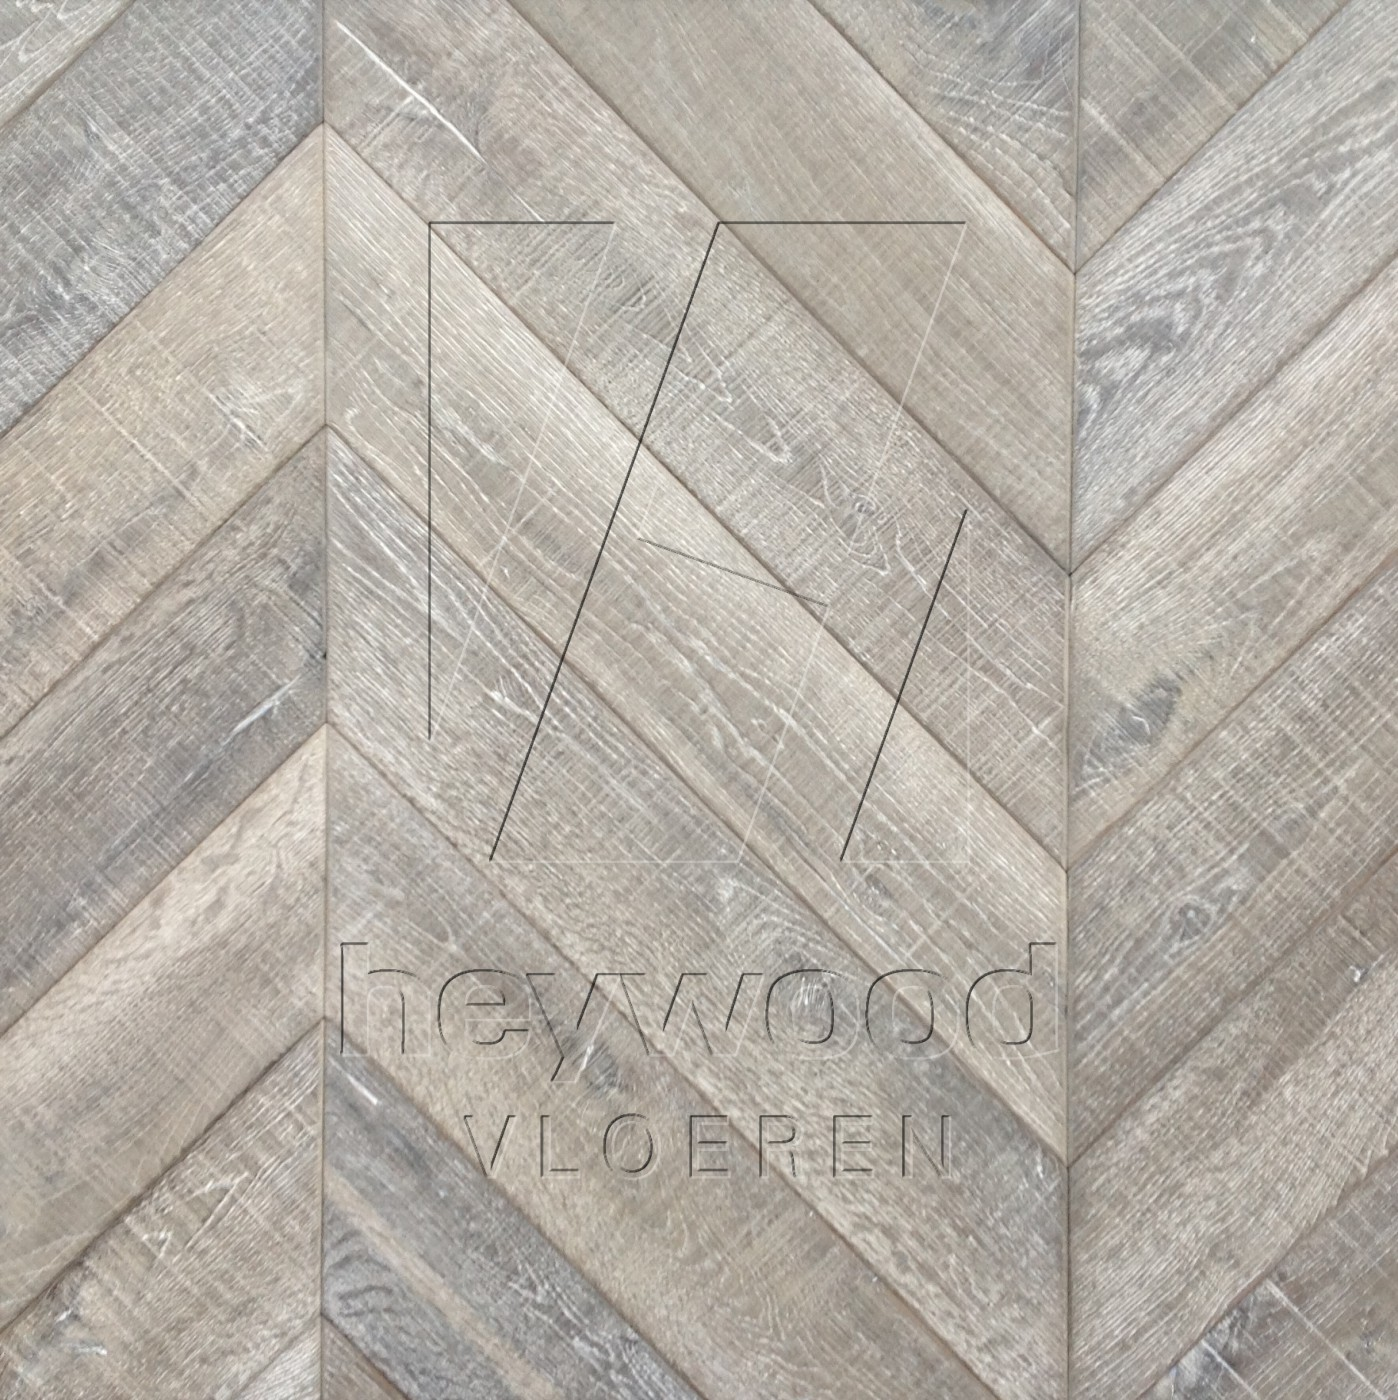 Bespoke RS Colour in Chevron of Pattern & Panel Floors